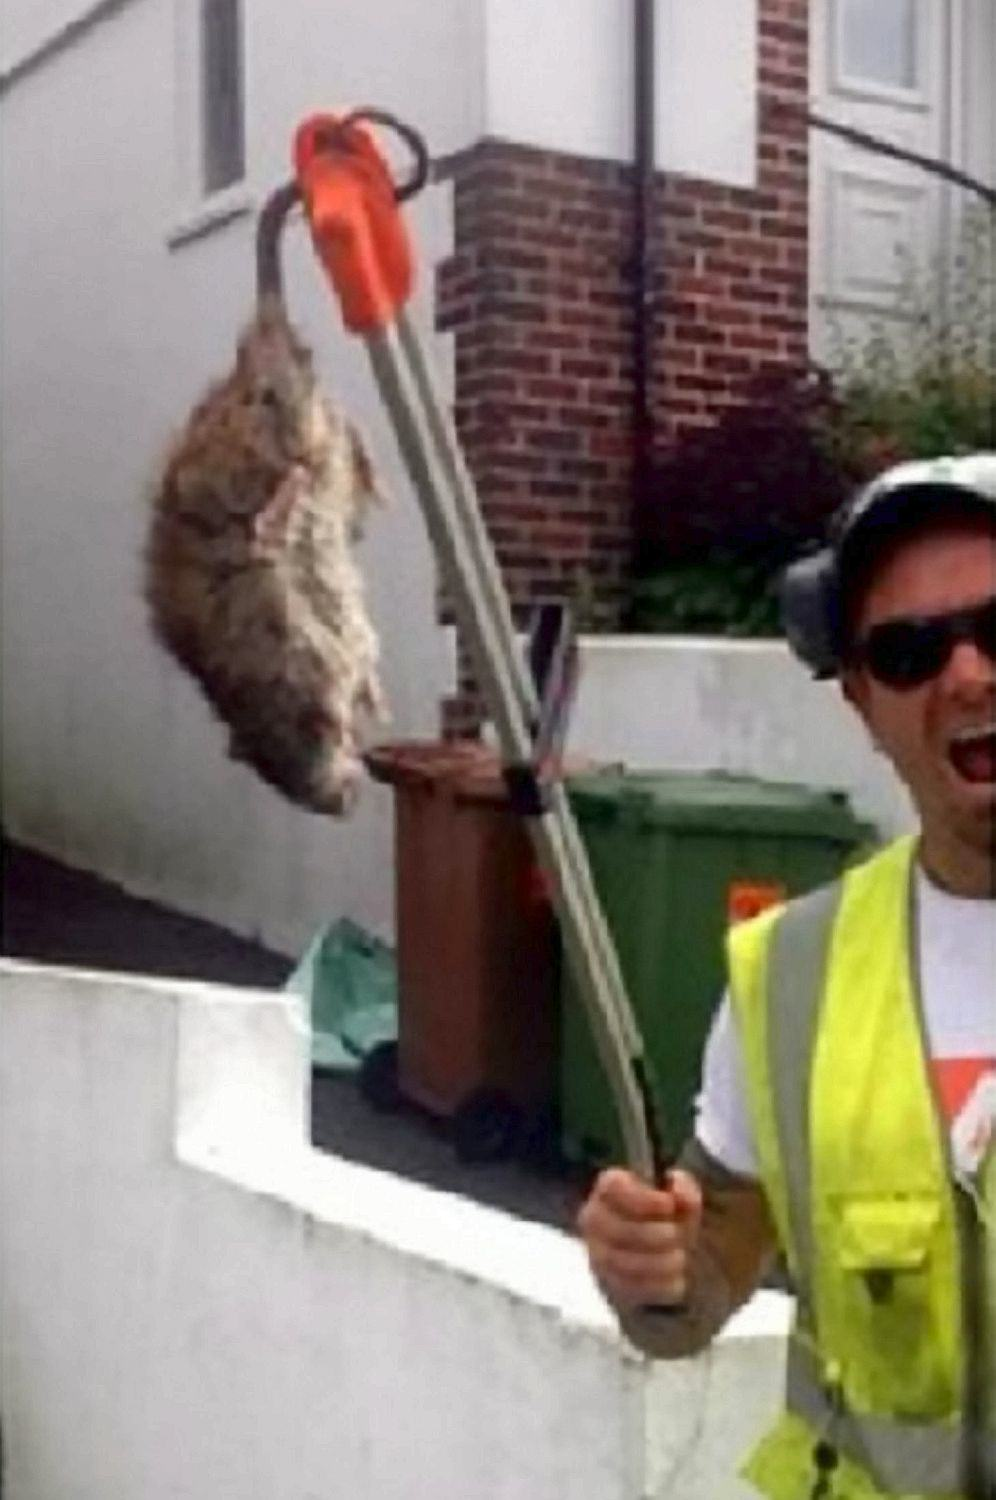 Rat The Size Of A Dog Chases Binman Down The Street In Plymouth Ben LandricombeSWNS